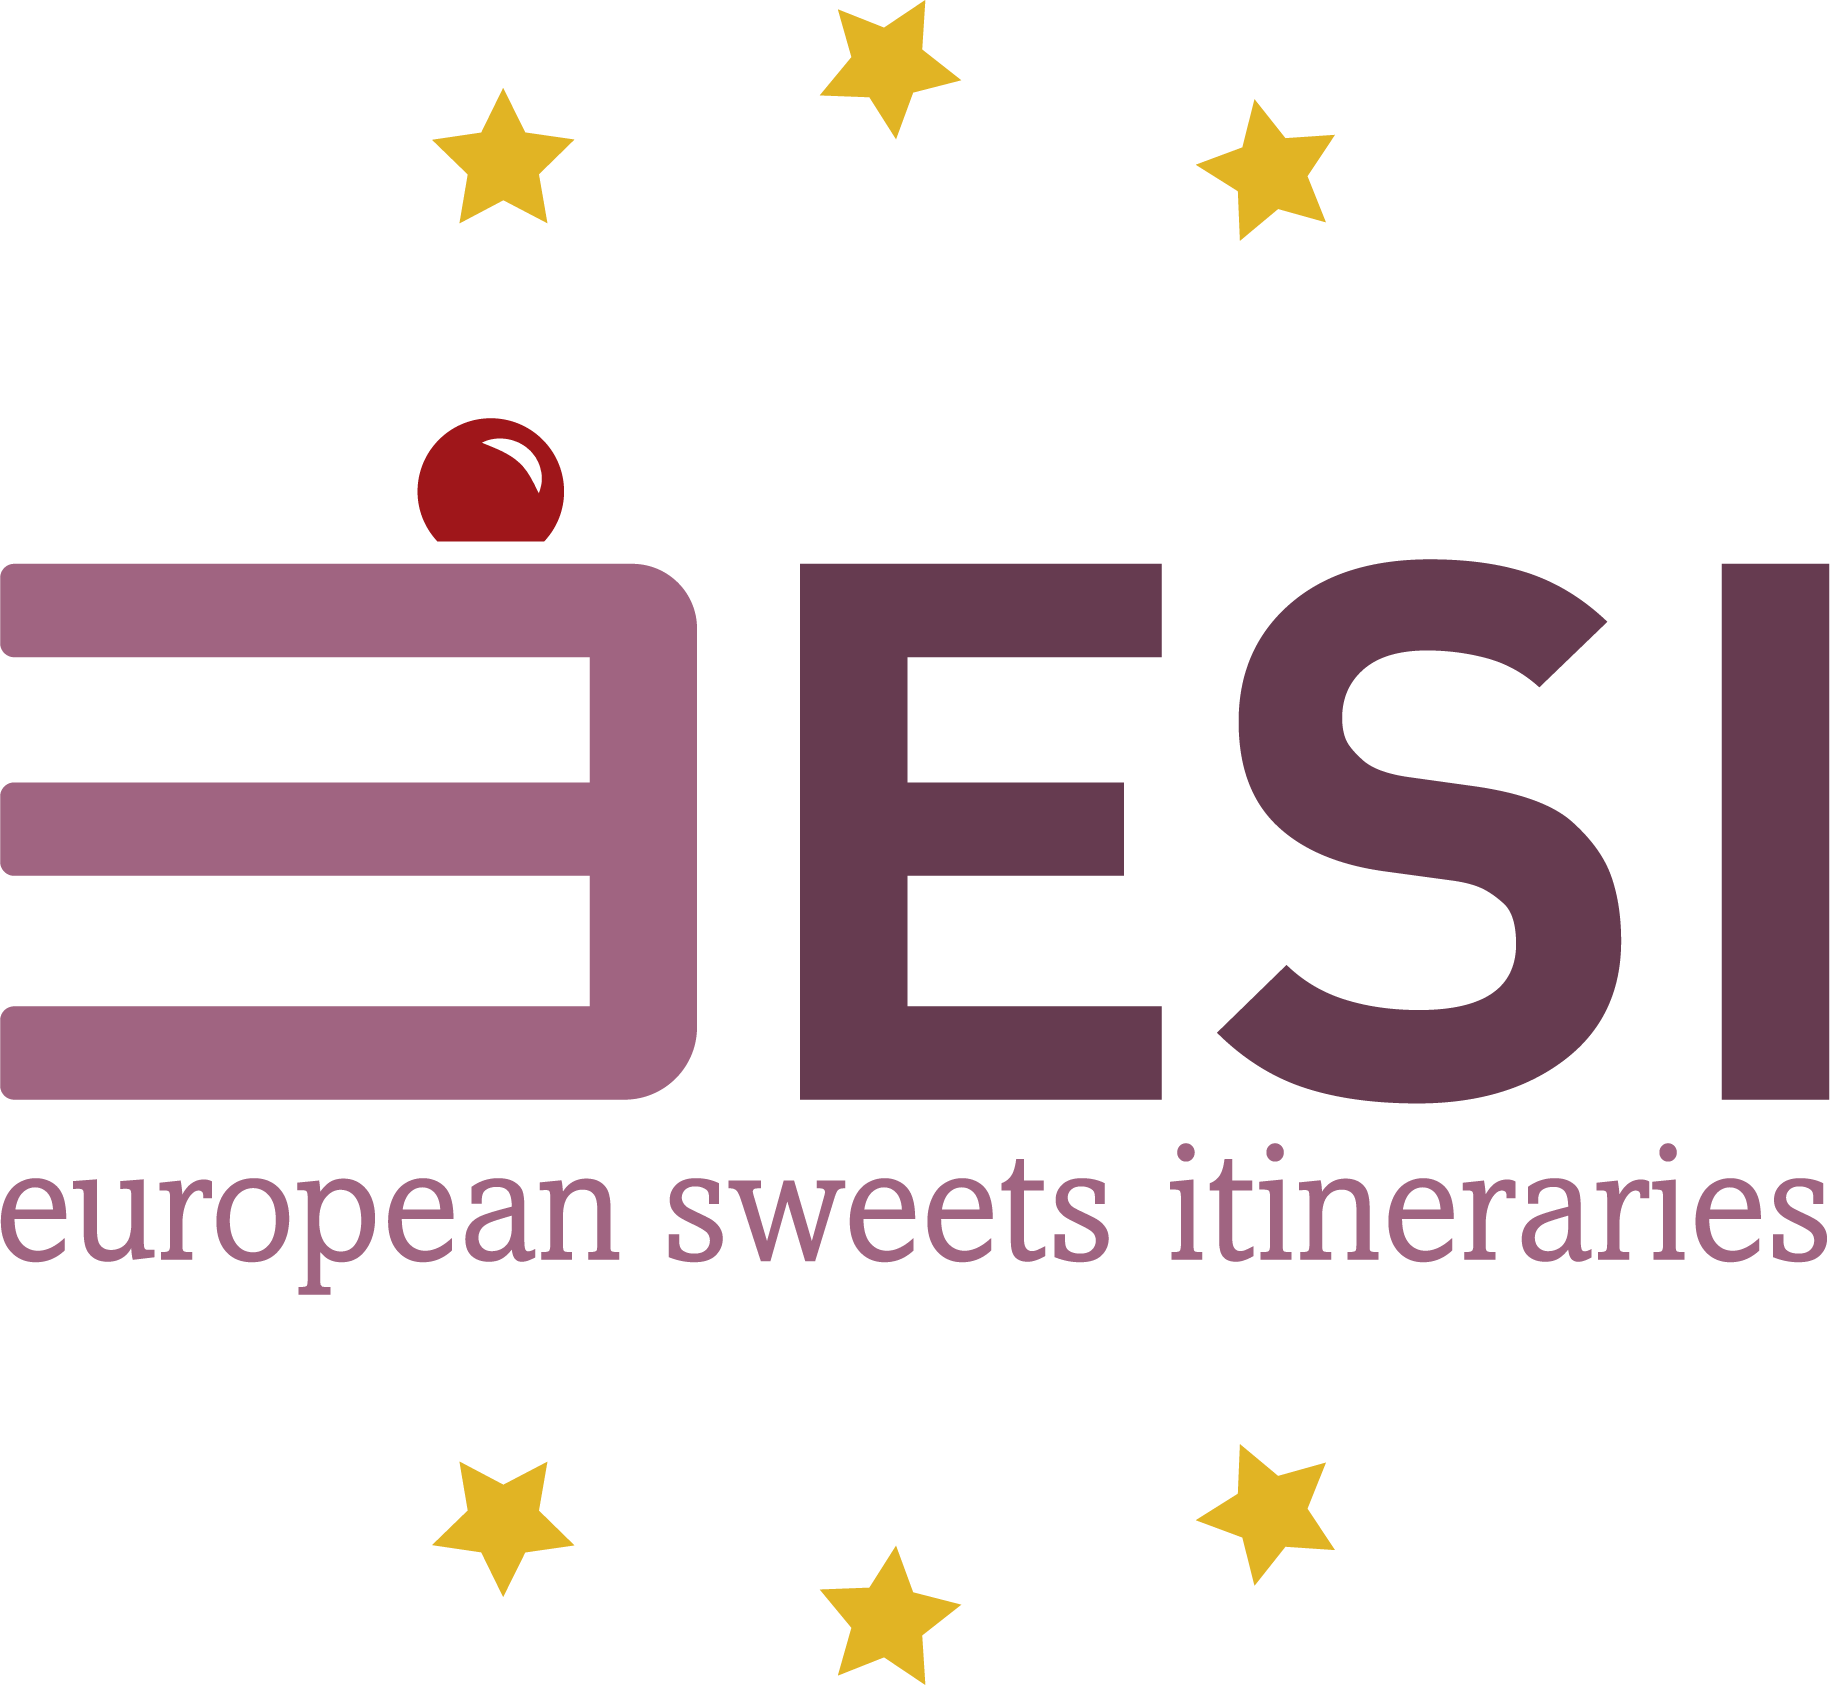 European Sweets Itineraries